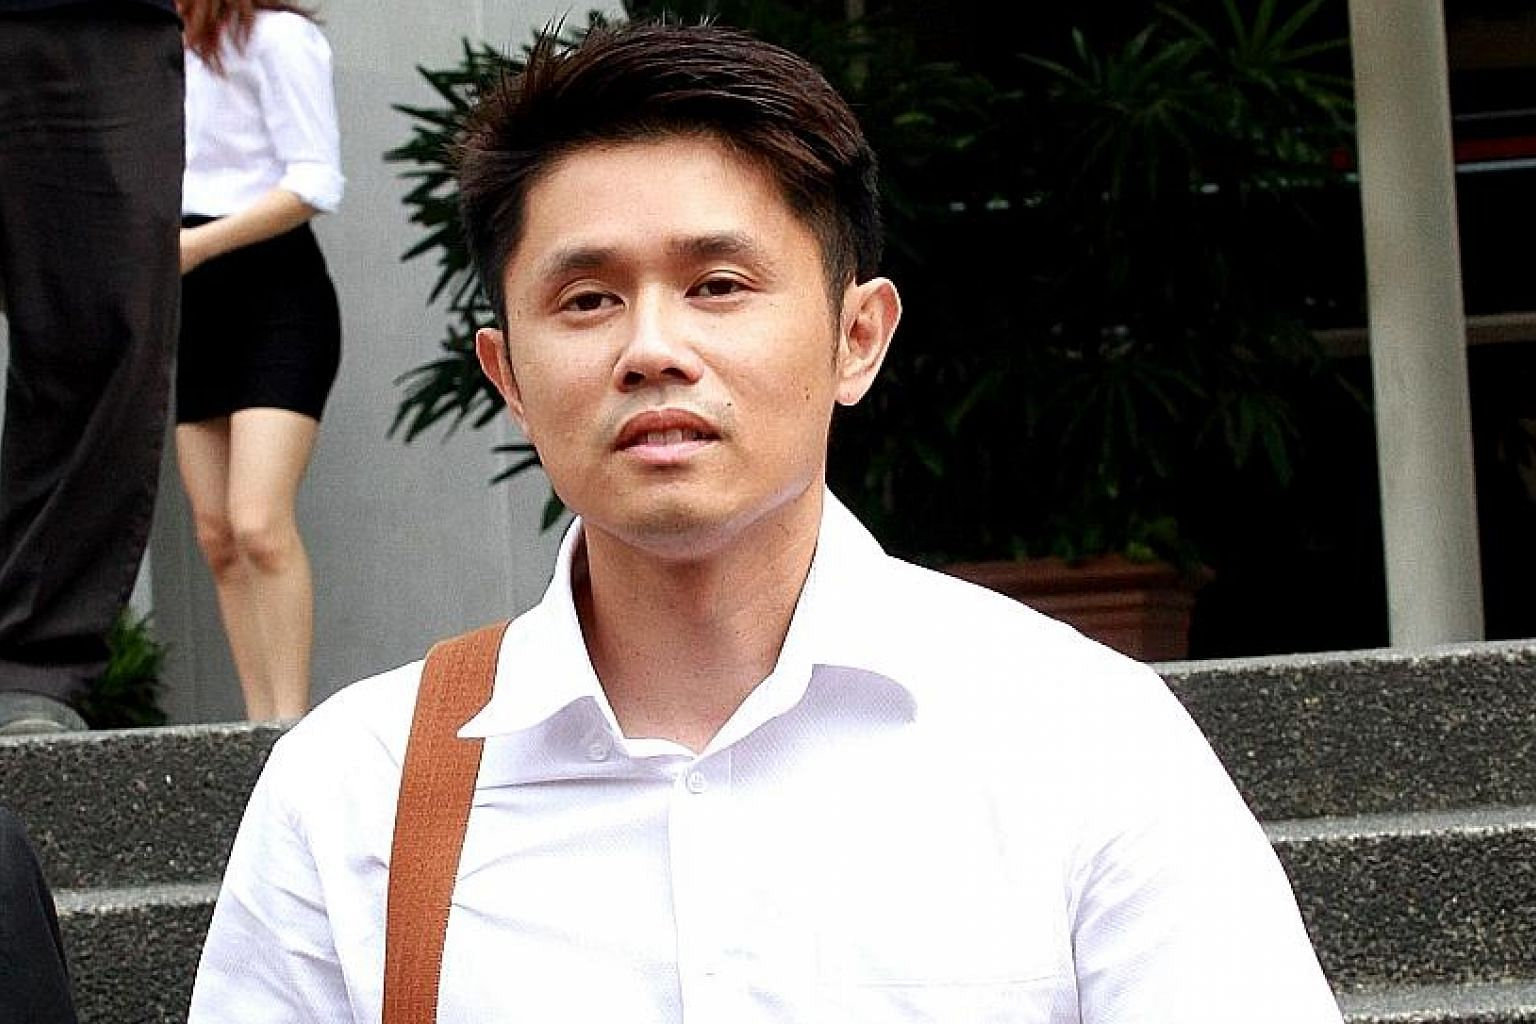 """Dr Jim Wong Meng Hang and Dr Zhu Xiu Chun had been suspended for 18 months and six months, respectively. SMC then appealed to the Court of Three Judges, saying the terms were """"manifestly inadequate""""."""